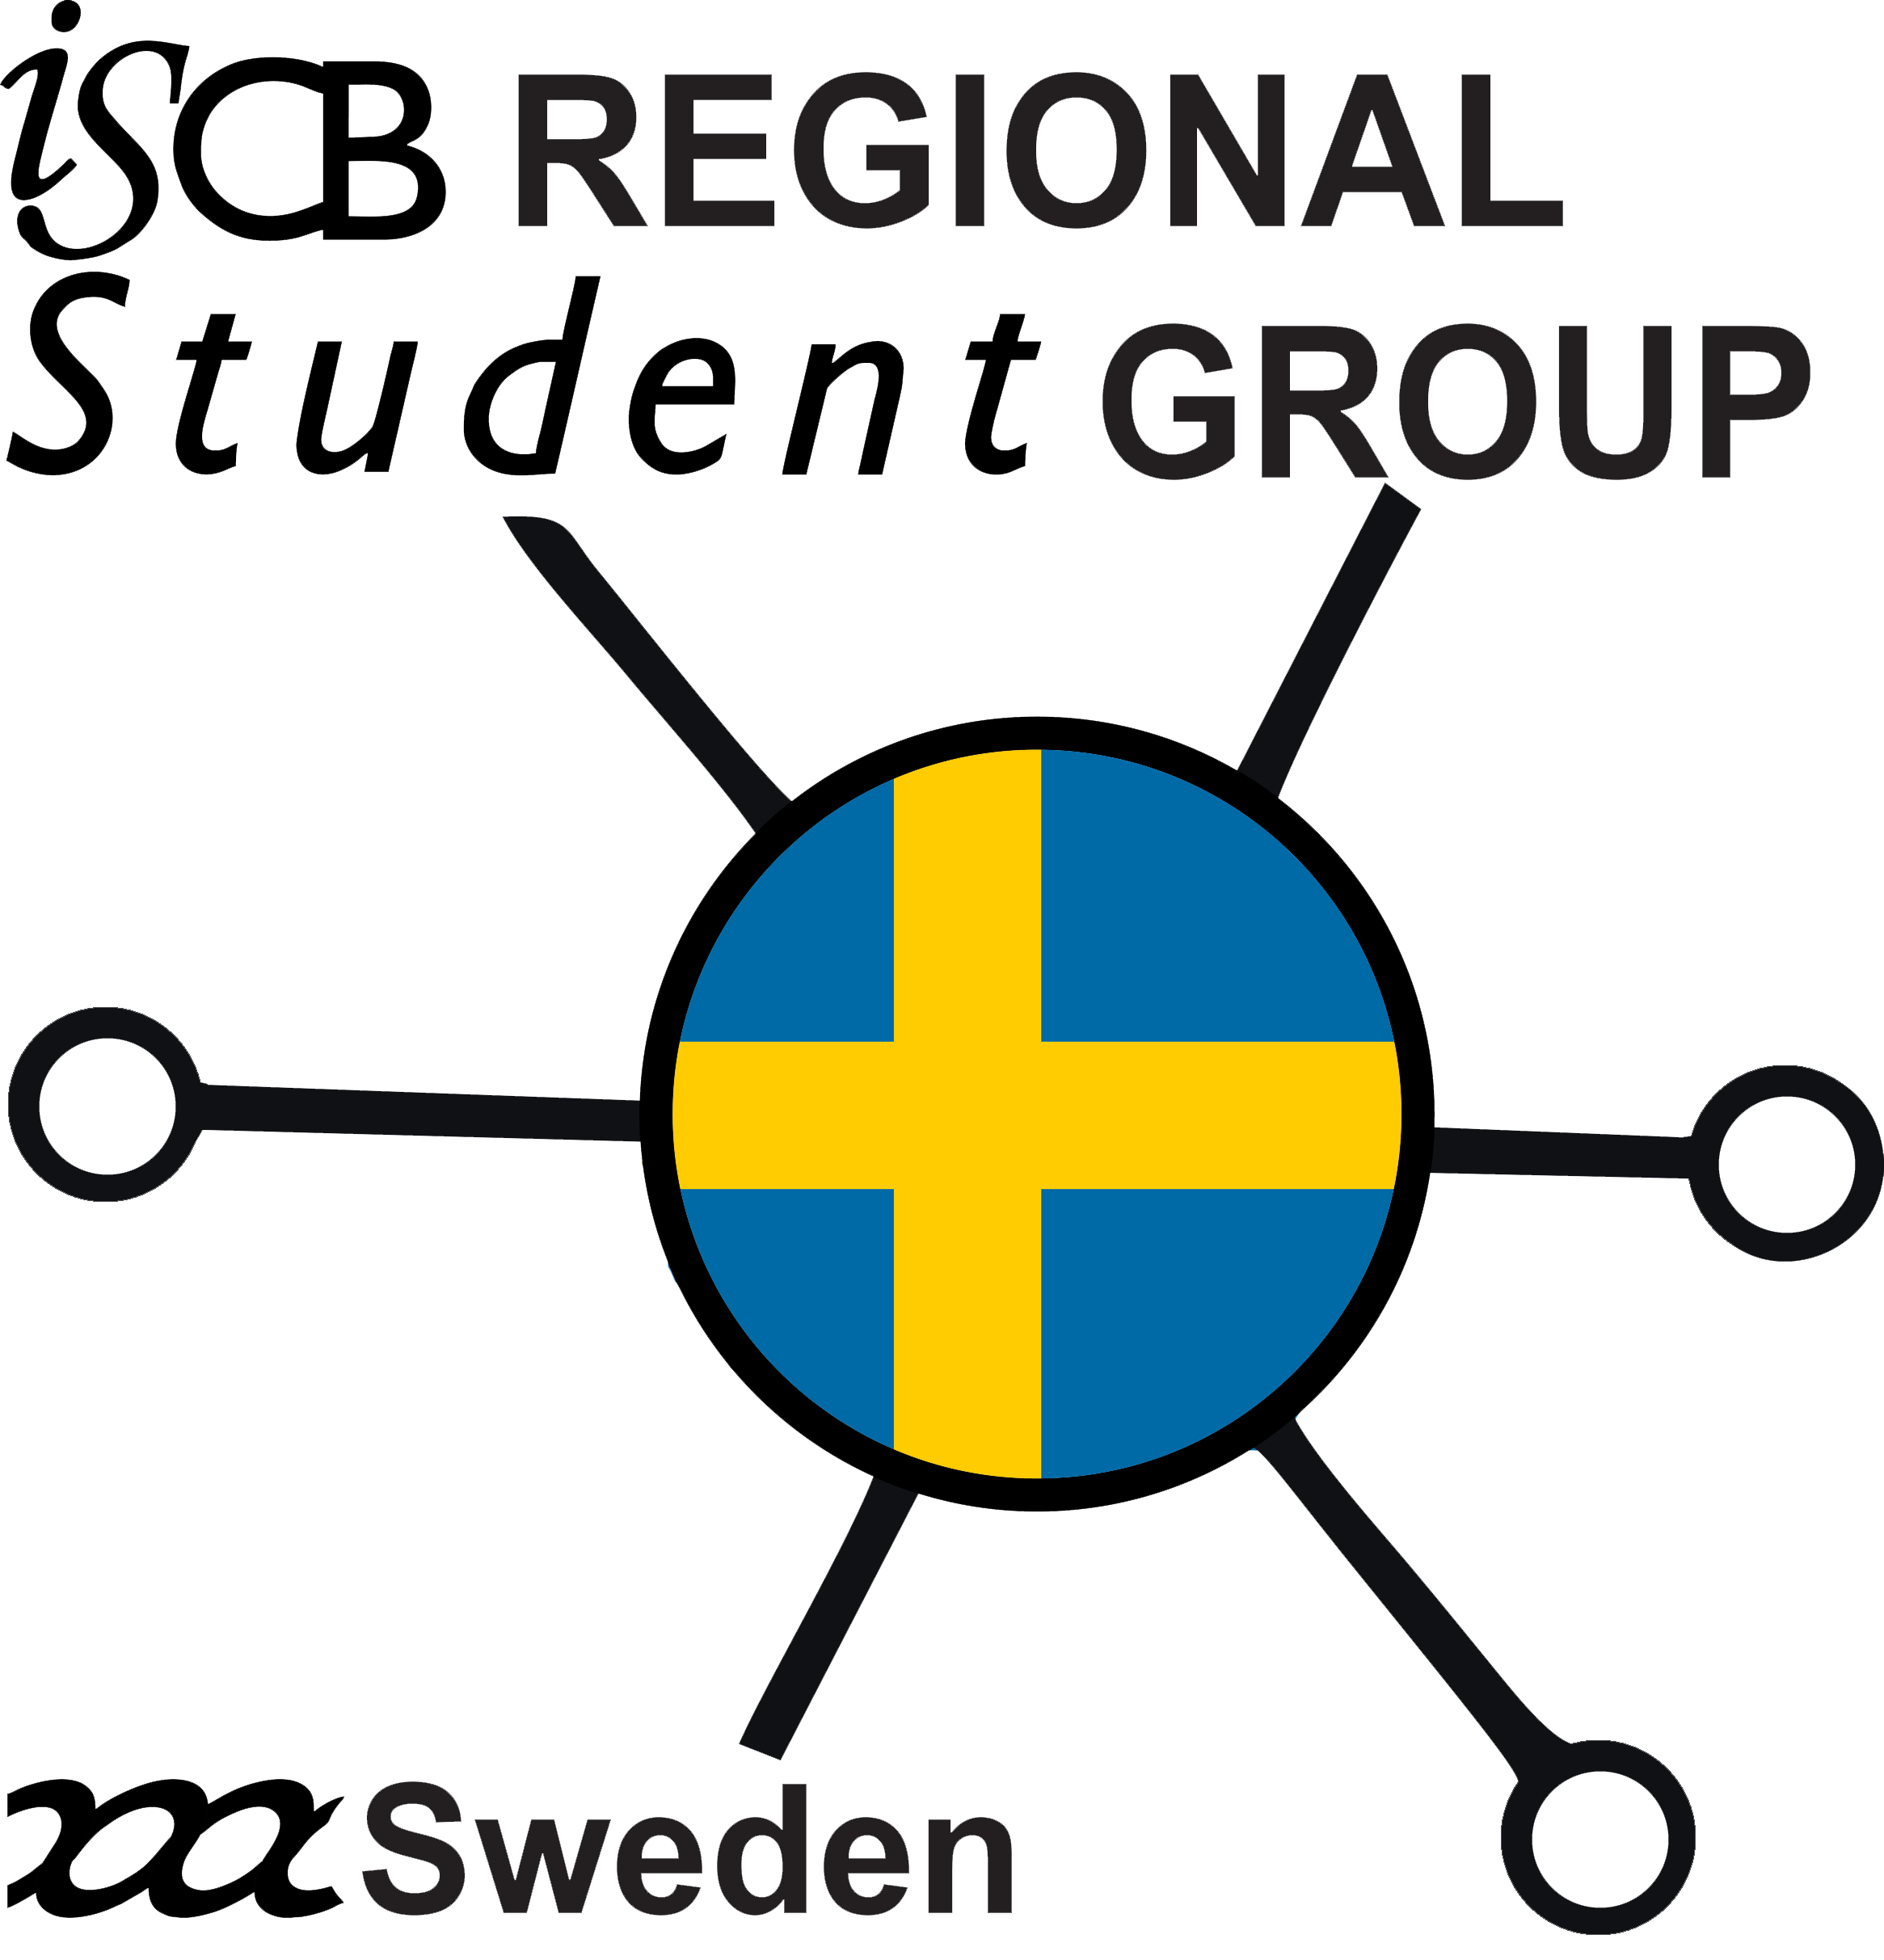 RSG-Sweden at Lund University